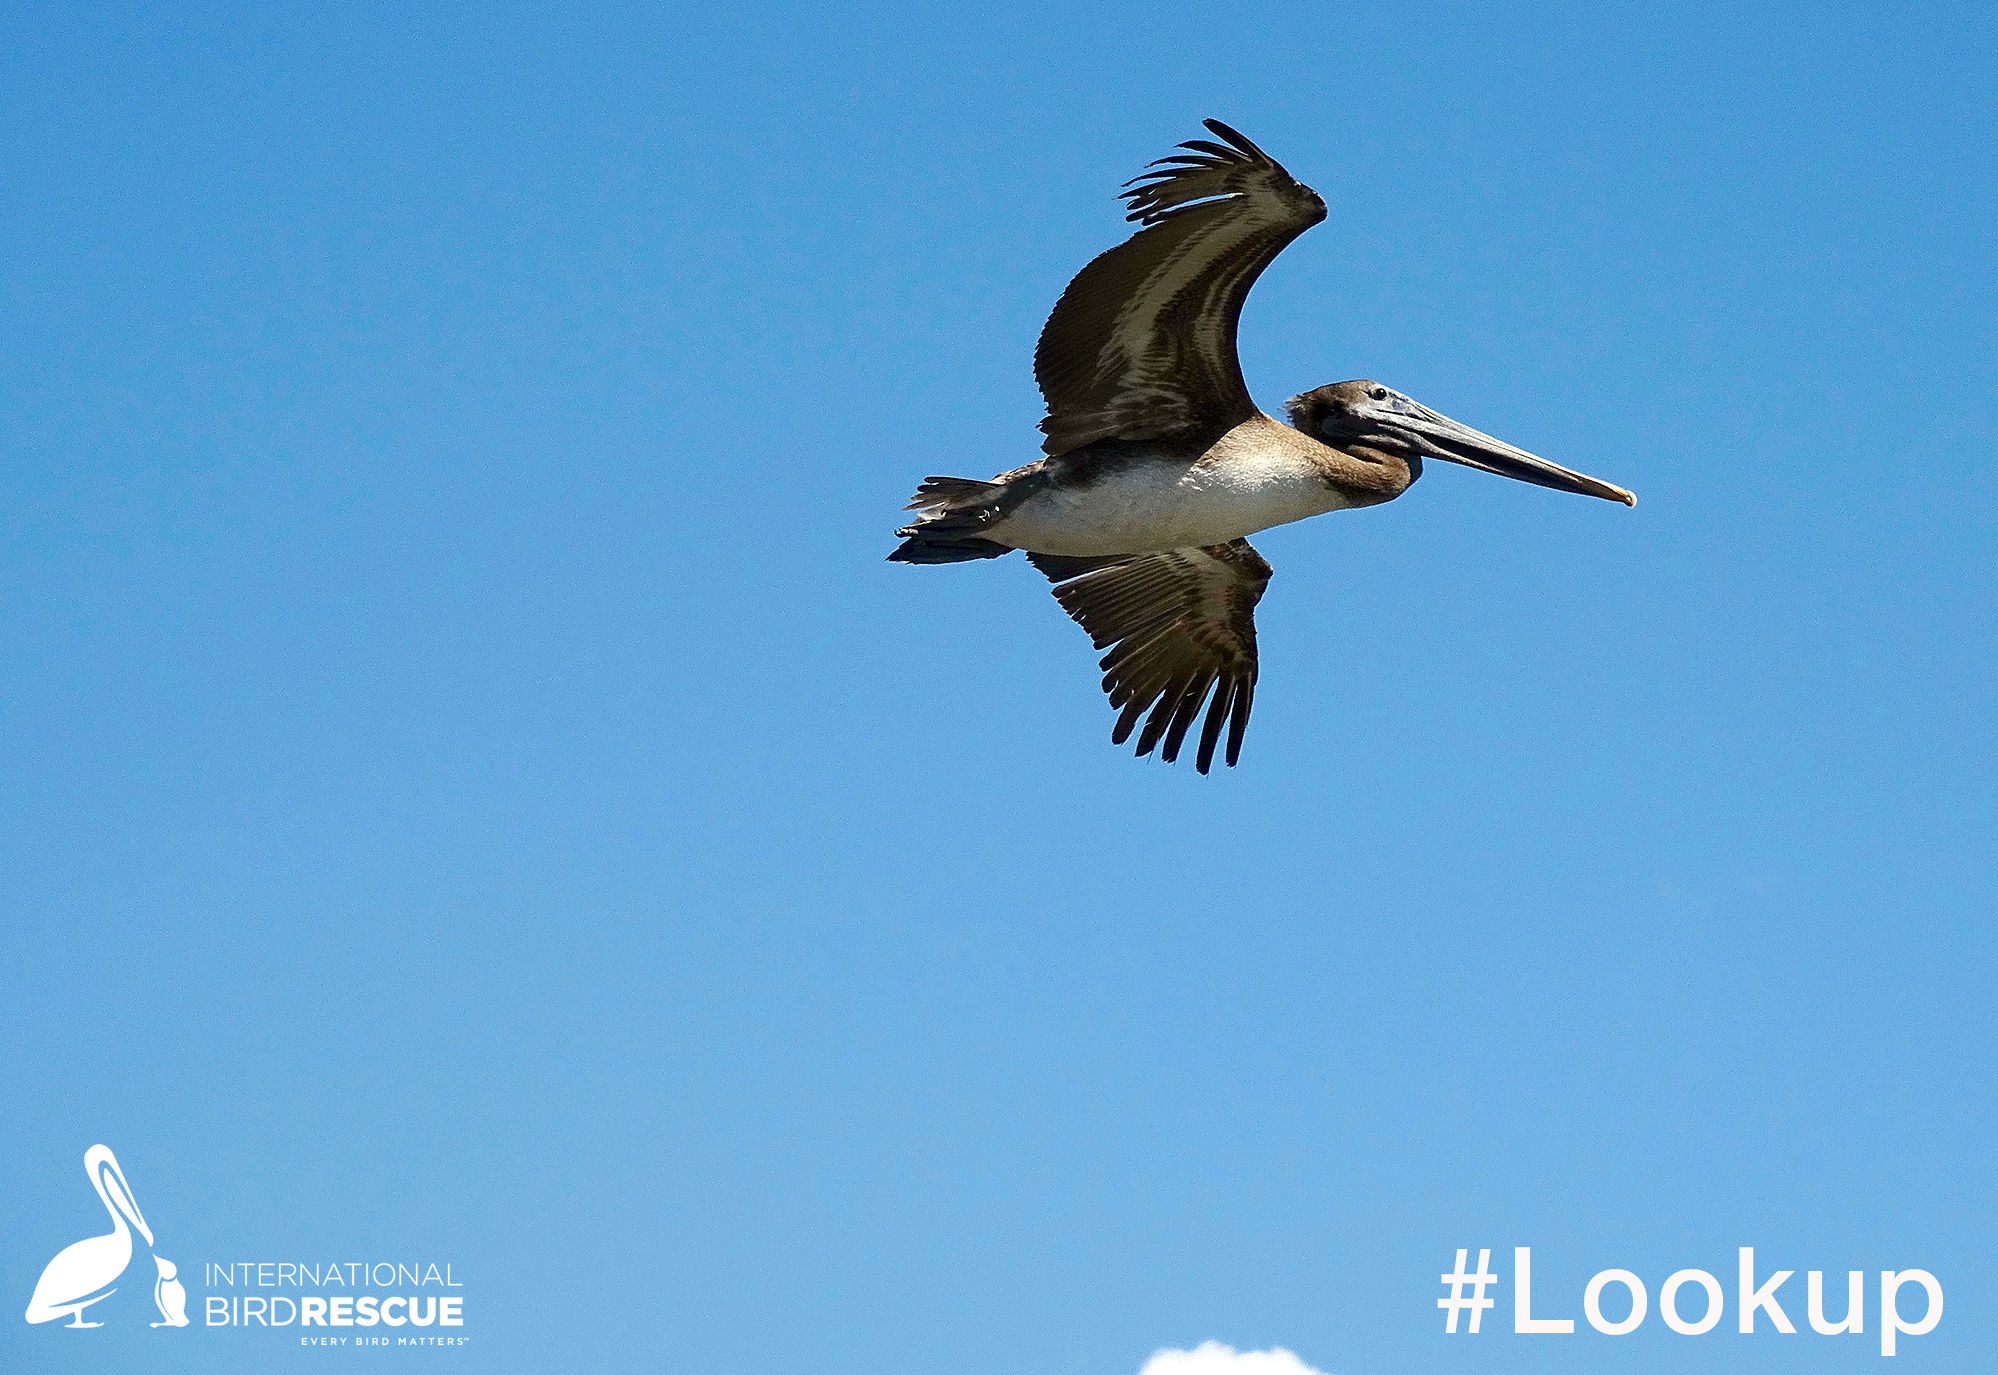 Brown Pelican in flight after release in Southern California by International Bird Rescue